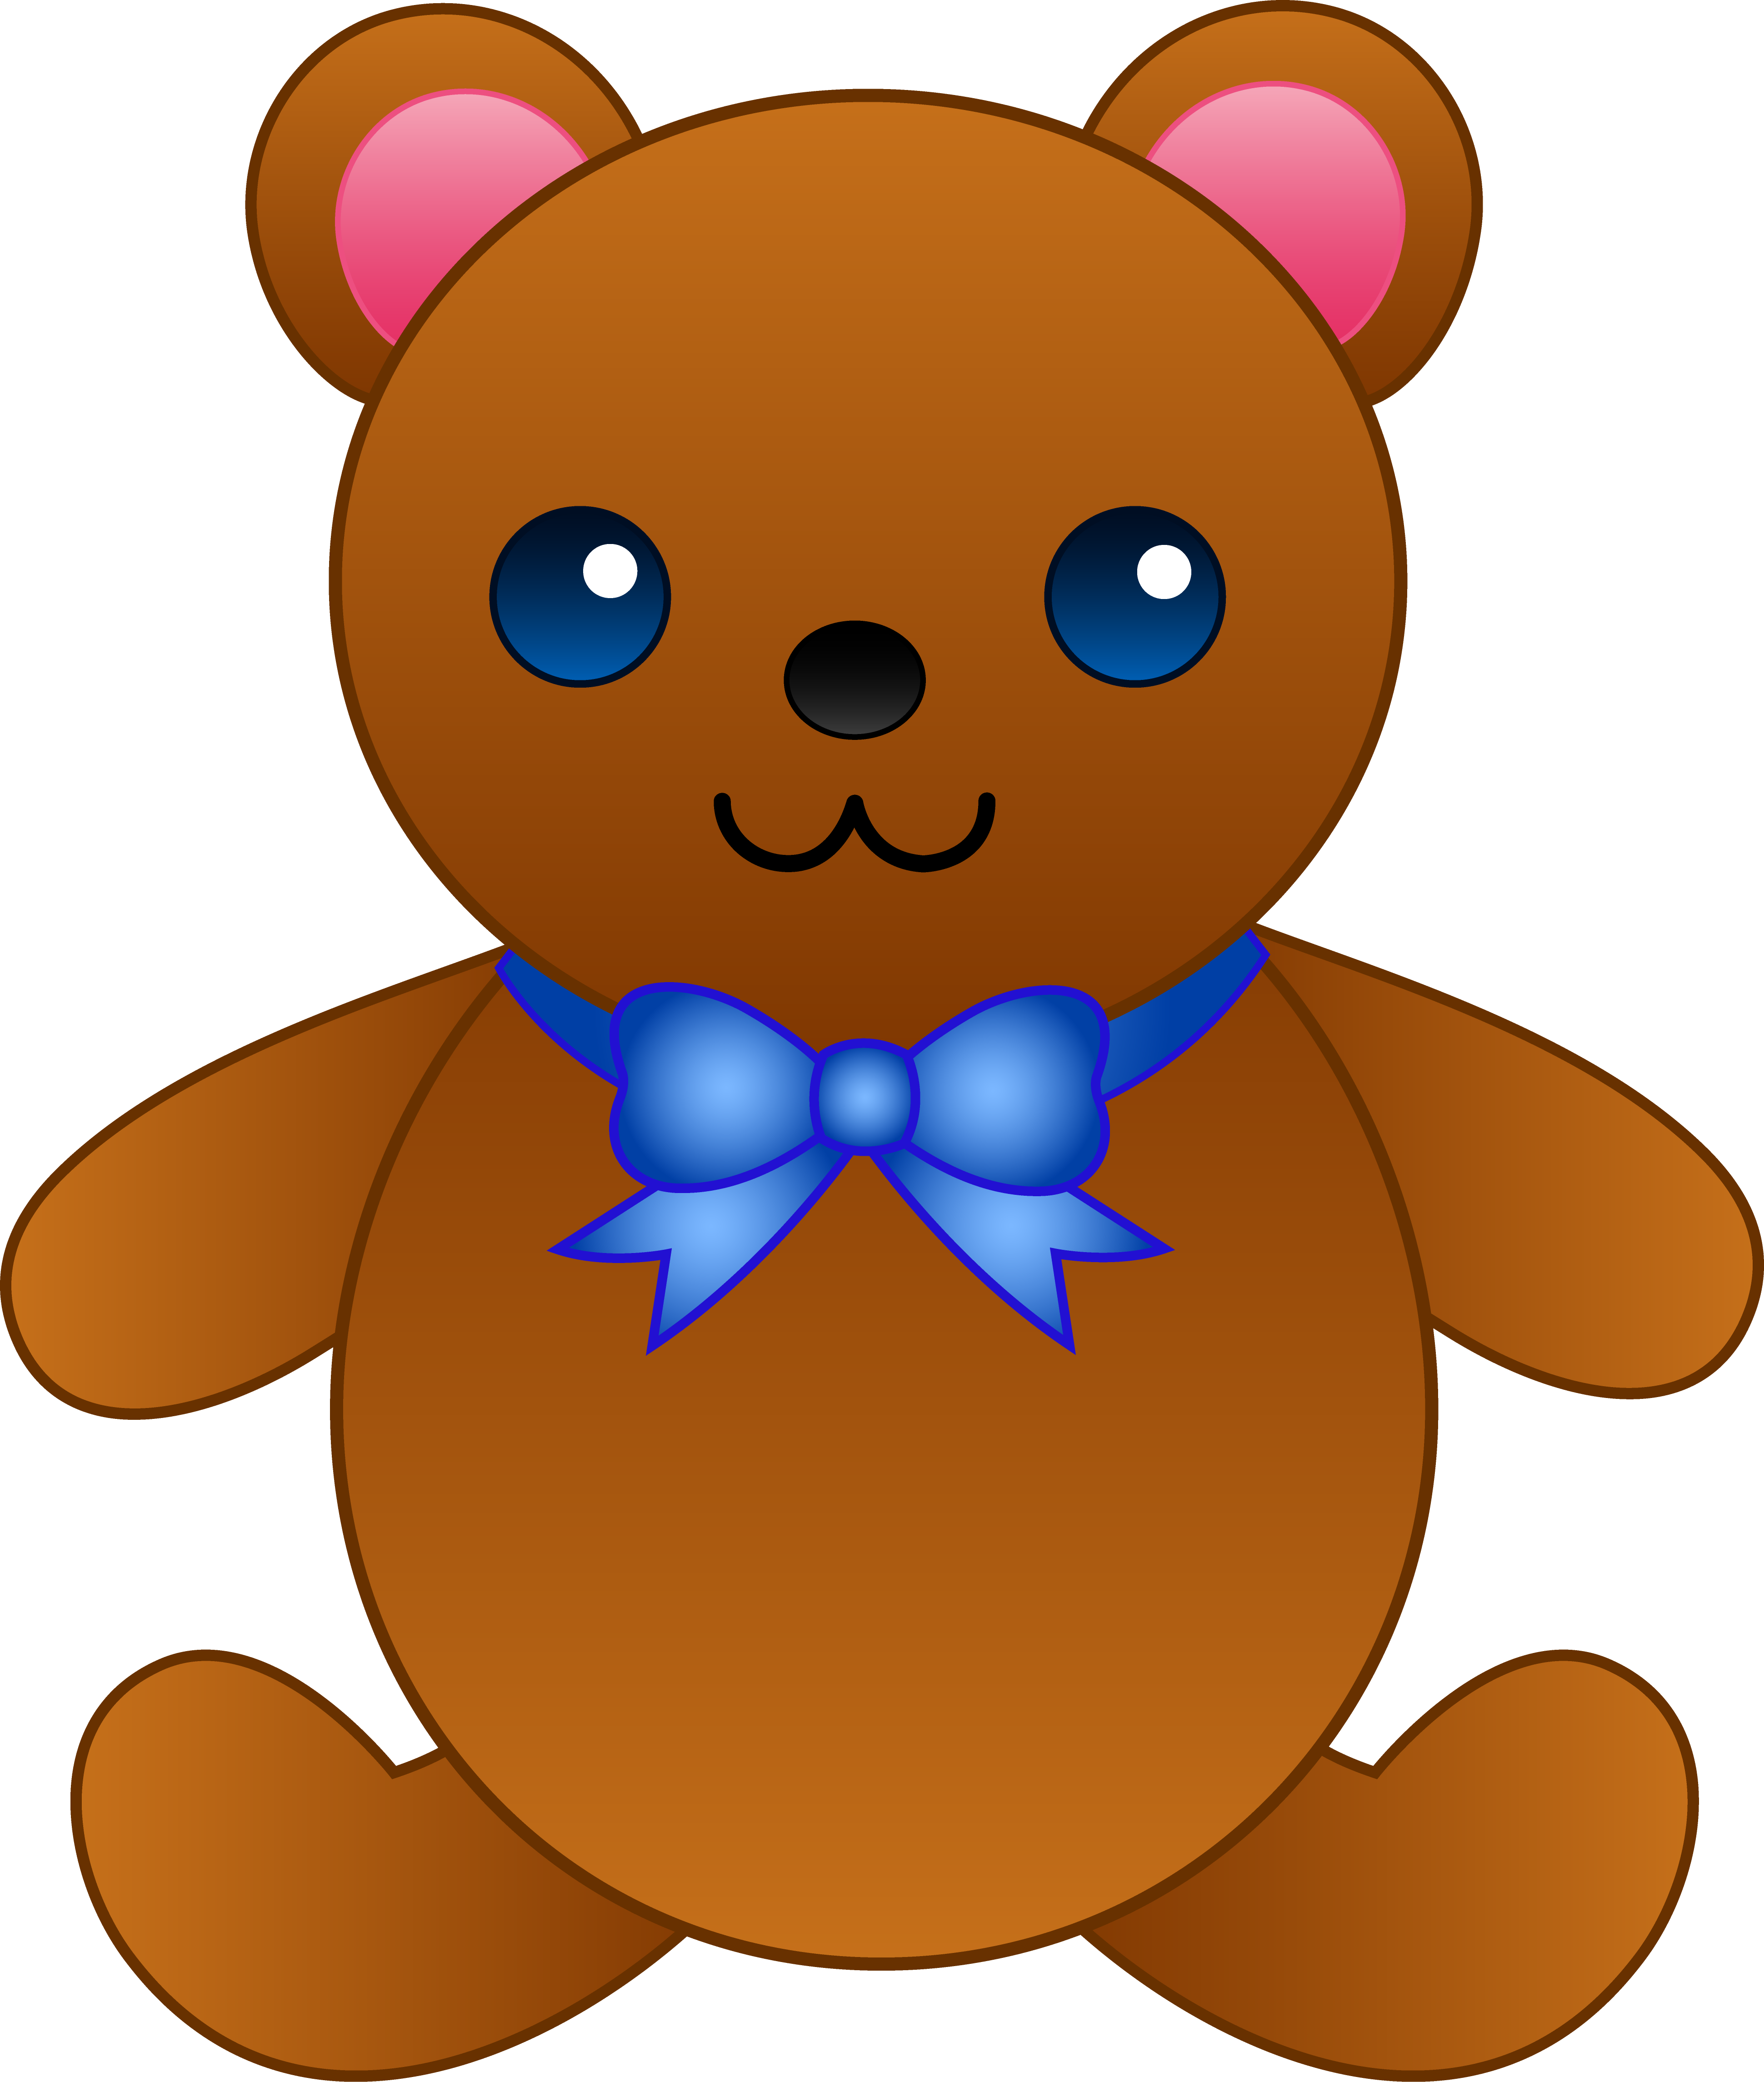 Brown Bear clipart teddy bear Cartoon Bear on Cute Drawing